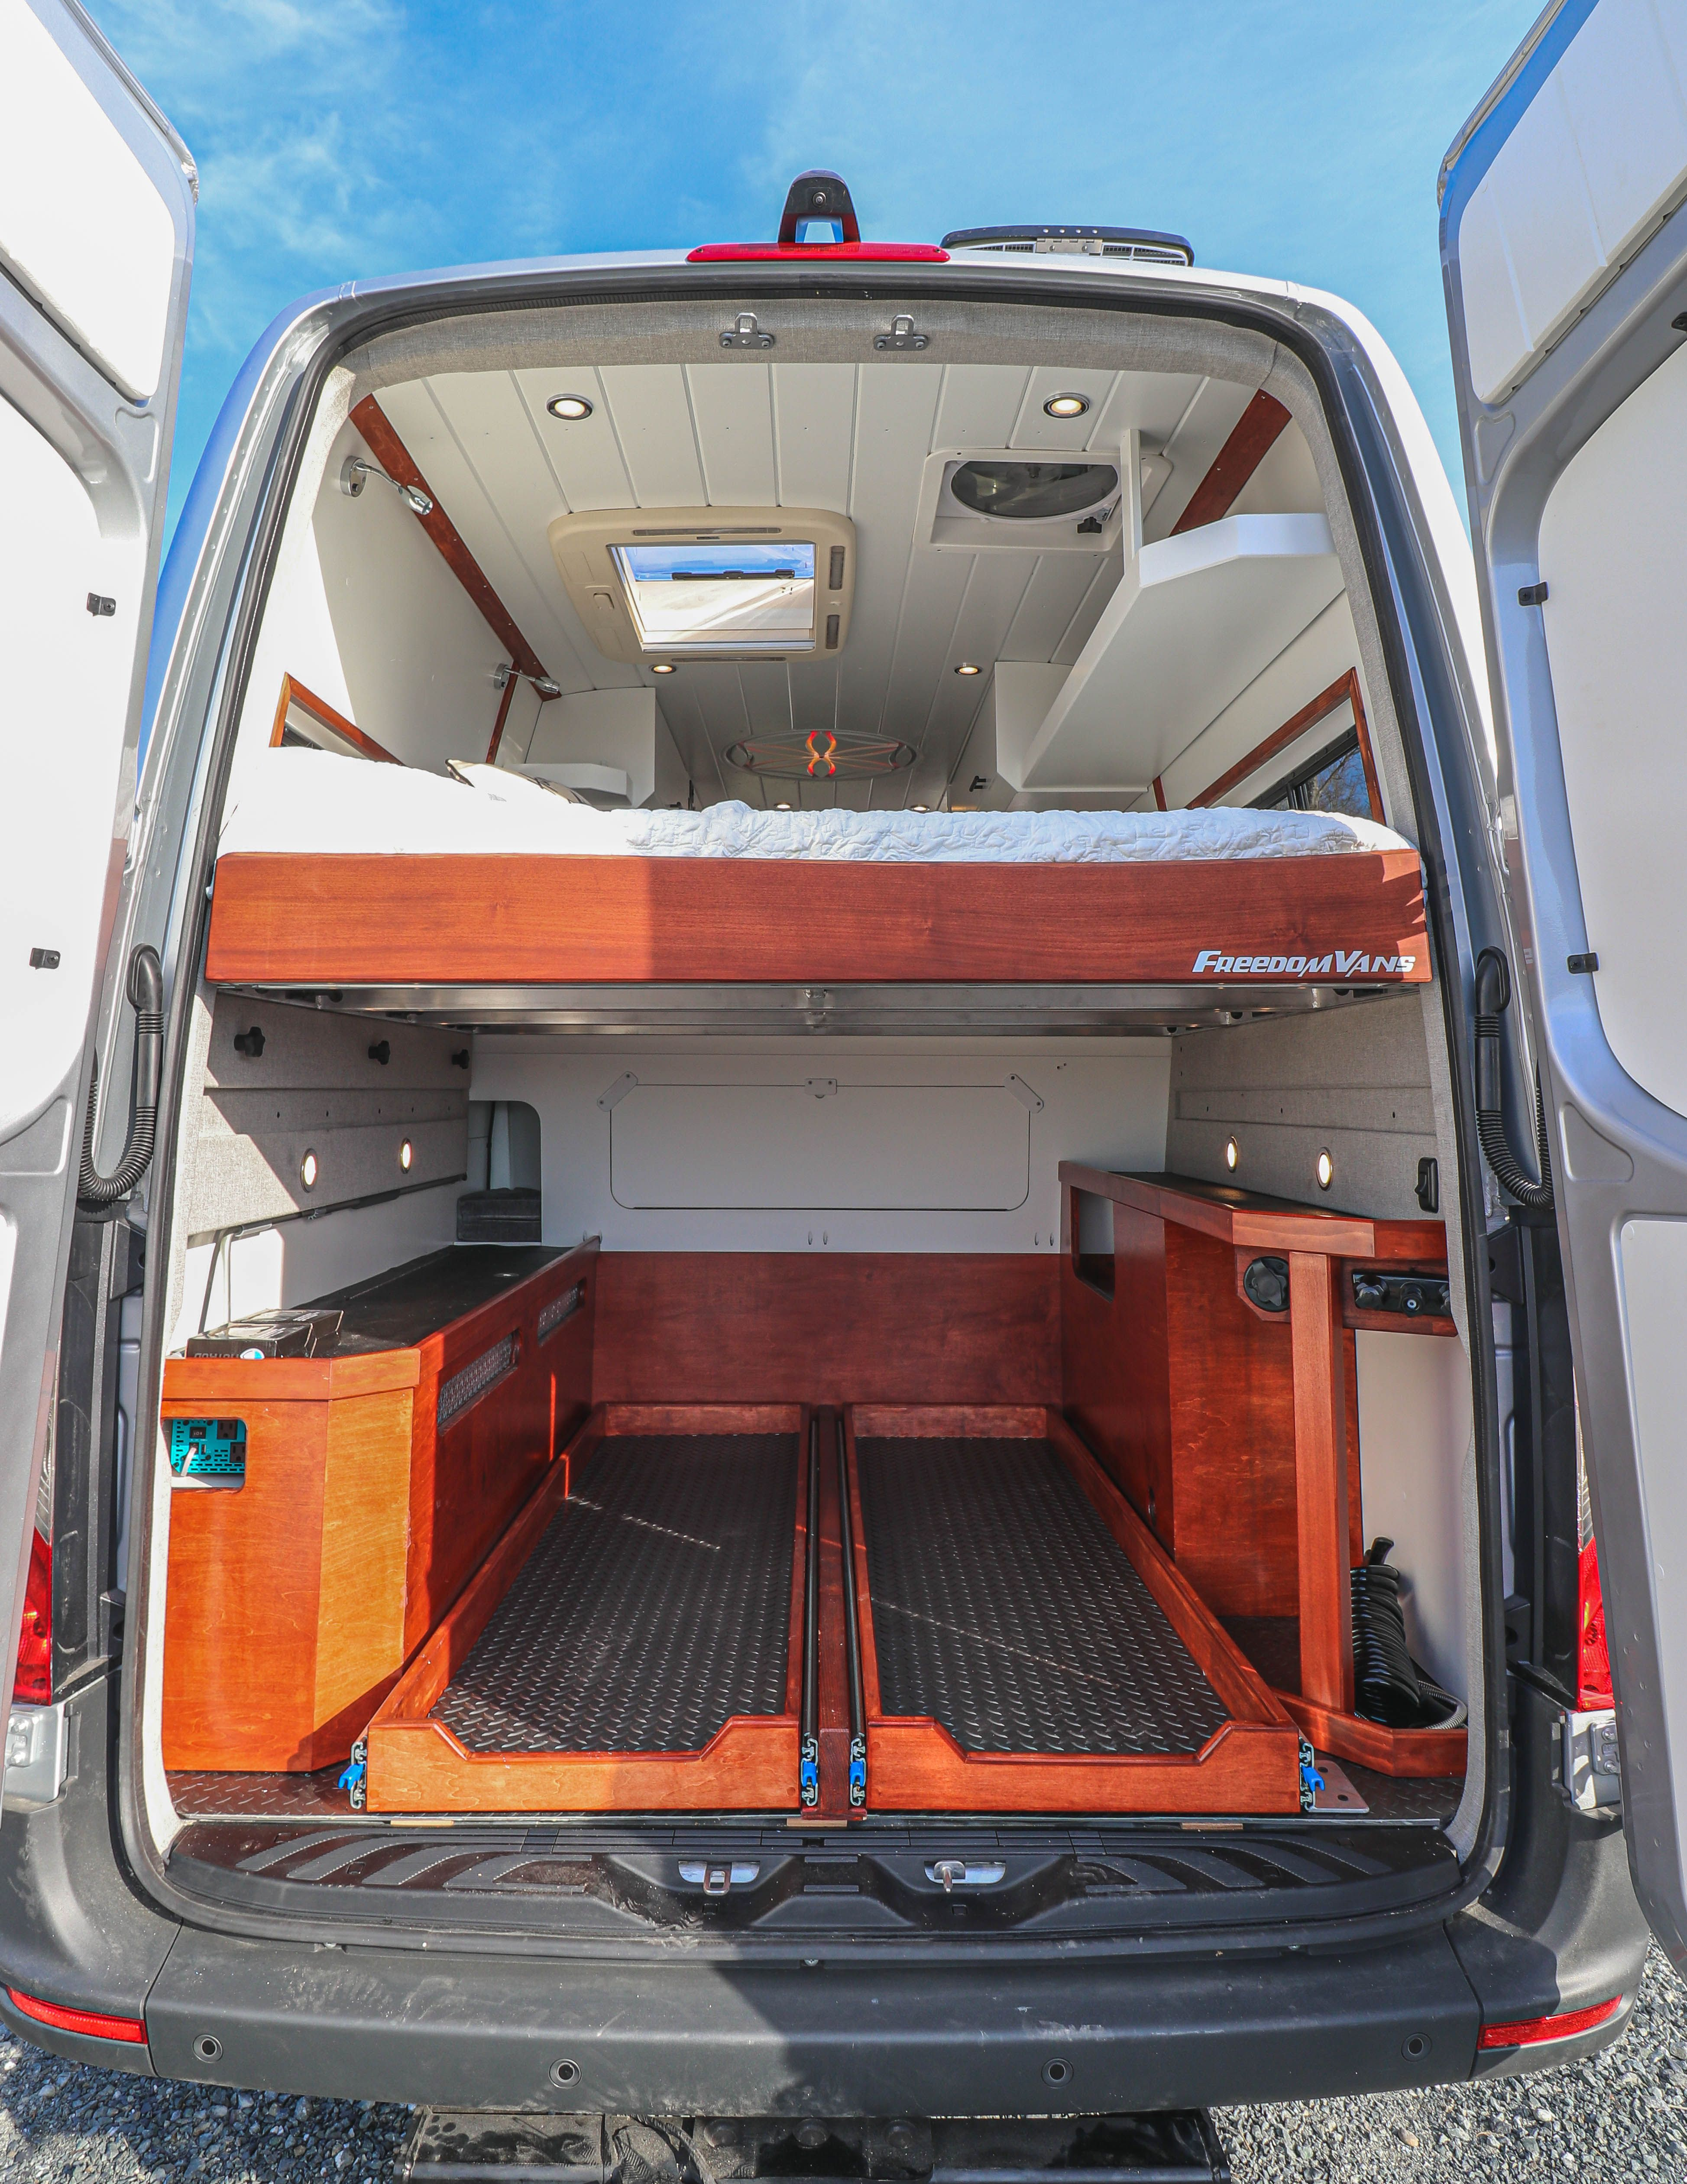 More photos and a tour video of this van conversion can be found on the project gallery of our website! #vans #freedomvans #sprinter #sprinterconversion #homeonwheels #smallspaceorganization #garage #tinyhome #tinyhouse #tinyliving #homeonwheels #vanconversion #convertedvan #convertedsprinter #vanconversioncompany #bellingham #washington